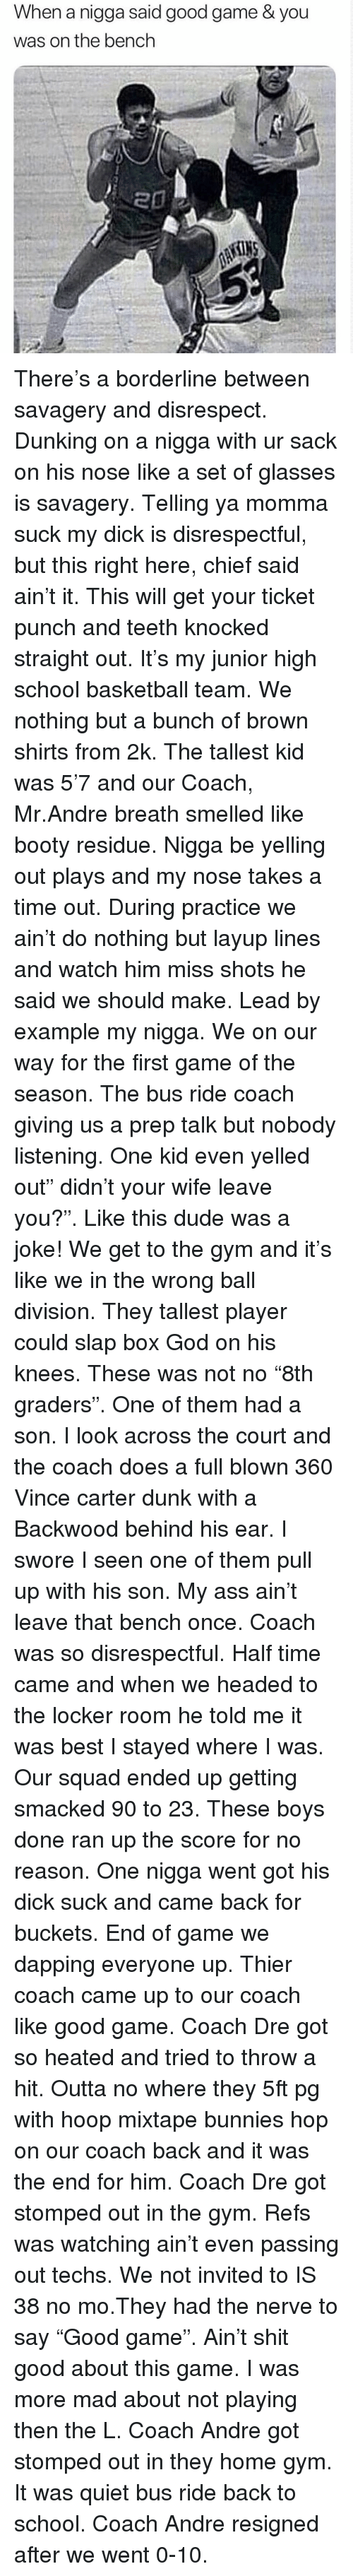 "buckets: When a nigga said good game & you  was on the bench There's a borderline between savagery and disrespect. Dunking on a nigga with ur sack on his nose like a set of glasses is savagery. Telling ya momma suck my dick is disrespectful, but this right here, chief said ain't it. This will get your ticket punch and teeth knocked straight out. It's my junior high school basketball team. We nothing but a bunch of brown shirts from 2k. The tallest kid was 5'7 and our Coach, Mr.Andre breath smelled like booty residue. Nigga be yelling out plays and my nose takes a time out. During practice we ain't do nothing but layup lines and watch him miss shots he said we should make. Lead by example my nigga. We on our way for the first game of the season. The bus ride coach giving us a prep talk but nobody listening. One kid even yelled out"" didn't your wife leave you?"". Like this dude was a joke! We get to the gym and it's like we in the wrong ball division. They tallest player could slap box God on his knees. These was not no ""8th graders"". One of them had a son. I look across the court and the coach does a full blown 360 Vince carter dunk with a Backwood behind his ear. I swore I seen one of them pull up with his son. My ass ain't leave that bench once. Coach was so disrespectful. Half time came and when we headed to the locker room he told me it was best I stayed where I was. Our squad ended up getting smacked 90 to 23. These boys done ran up the score for no reason. One nigga went got his dick suck and came back for buckets. End of game we dapping everyone up. Thier coach came up to our coach like good game. Coach Dre got so heated and tried to throw a hit. Outta no where they 5ft pg with hoop mixtape bunnies hop on our coach back and it was the end for him. Coach Dre got stomped out in the gym. Refs was watching ain't even passing out techs. We not invited to IS 38 no mo.They had the nerve to say ""Good game"". Ain't shit good about this game. I was more mad about not playing then the L. Coach Andre got stomped out in they home gym. It was quiet bus ride back to school. Coach Andre resigned after we went 0-10."